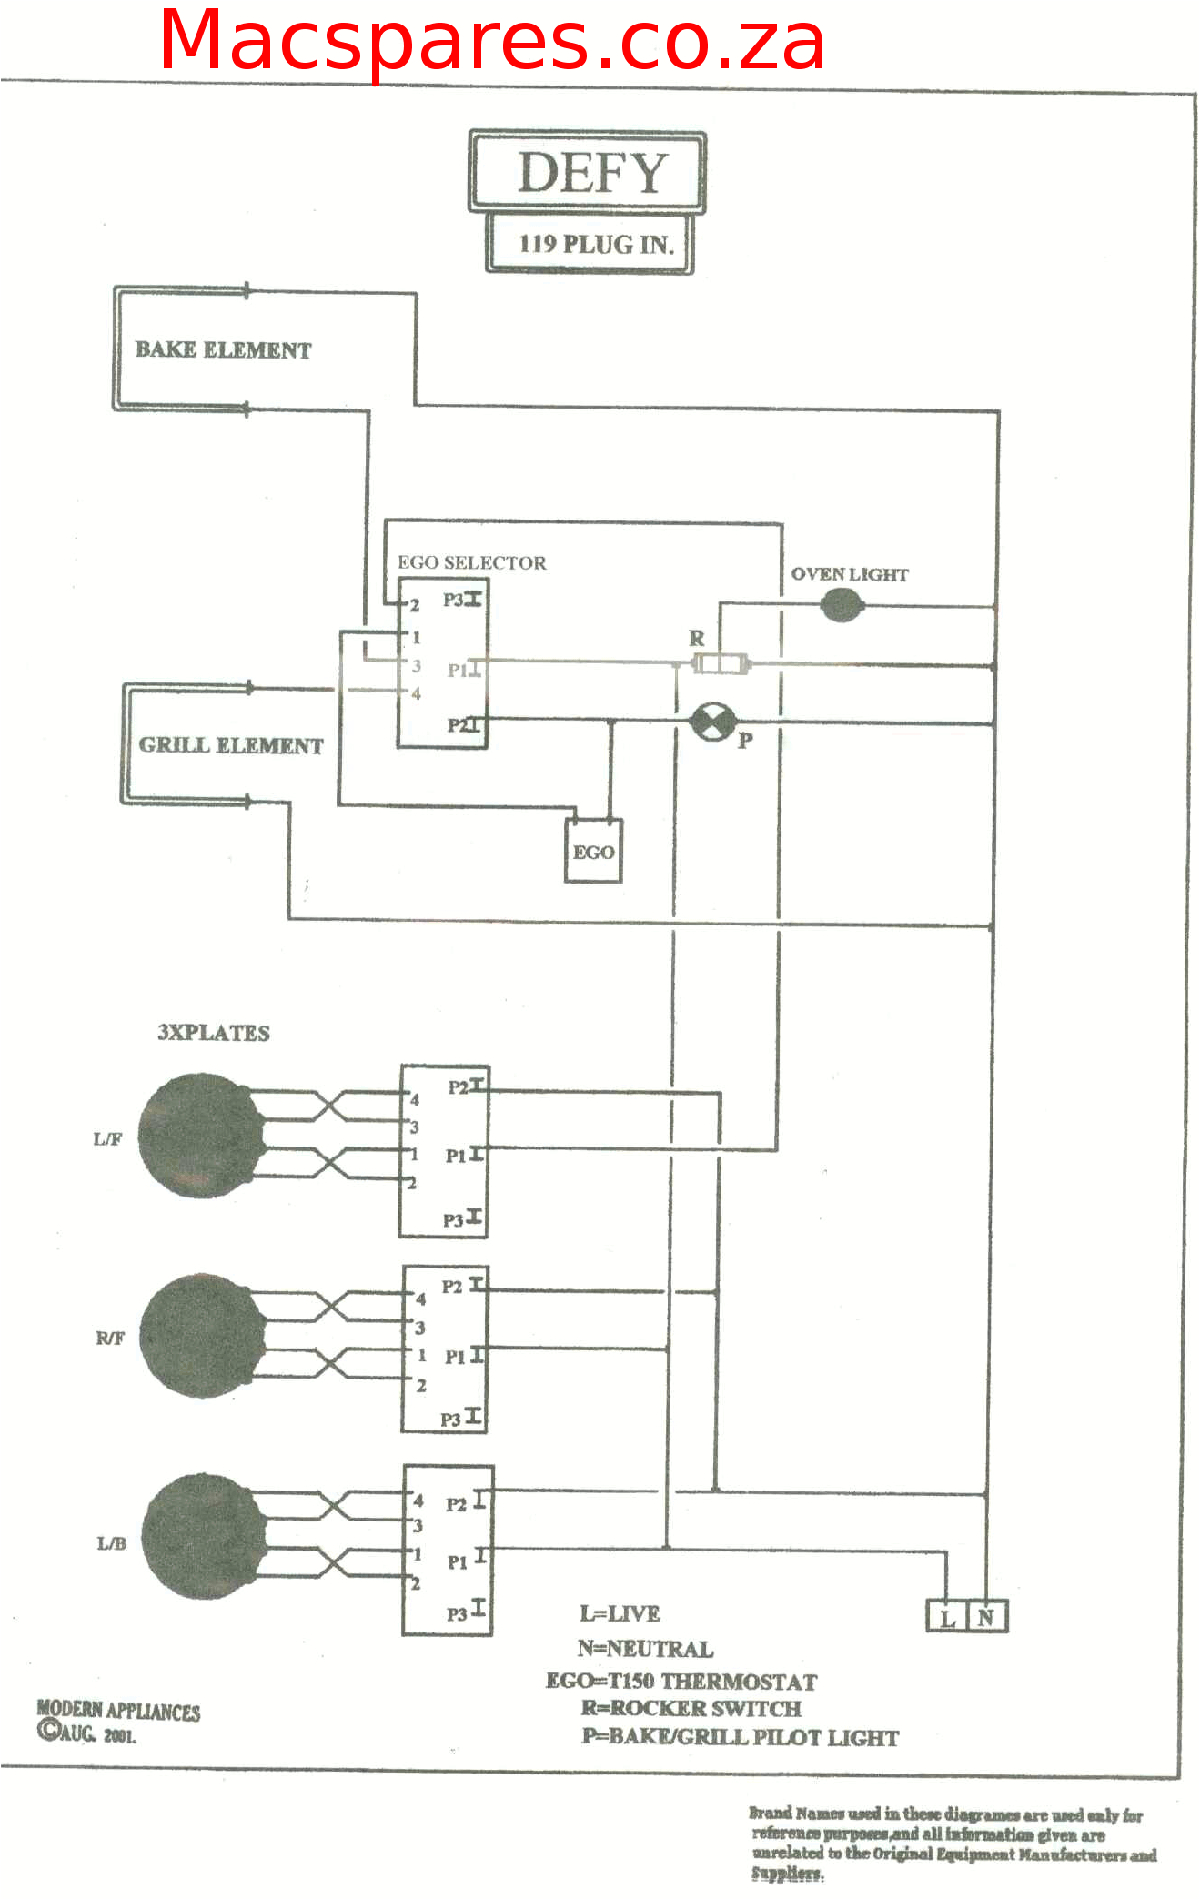 wiring diagrams stoves macspares wholesale spare partsdefy gemini wiring diagram 7